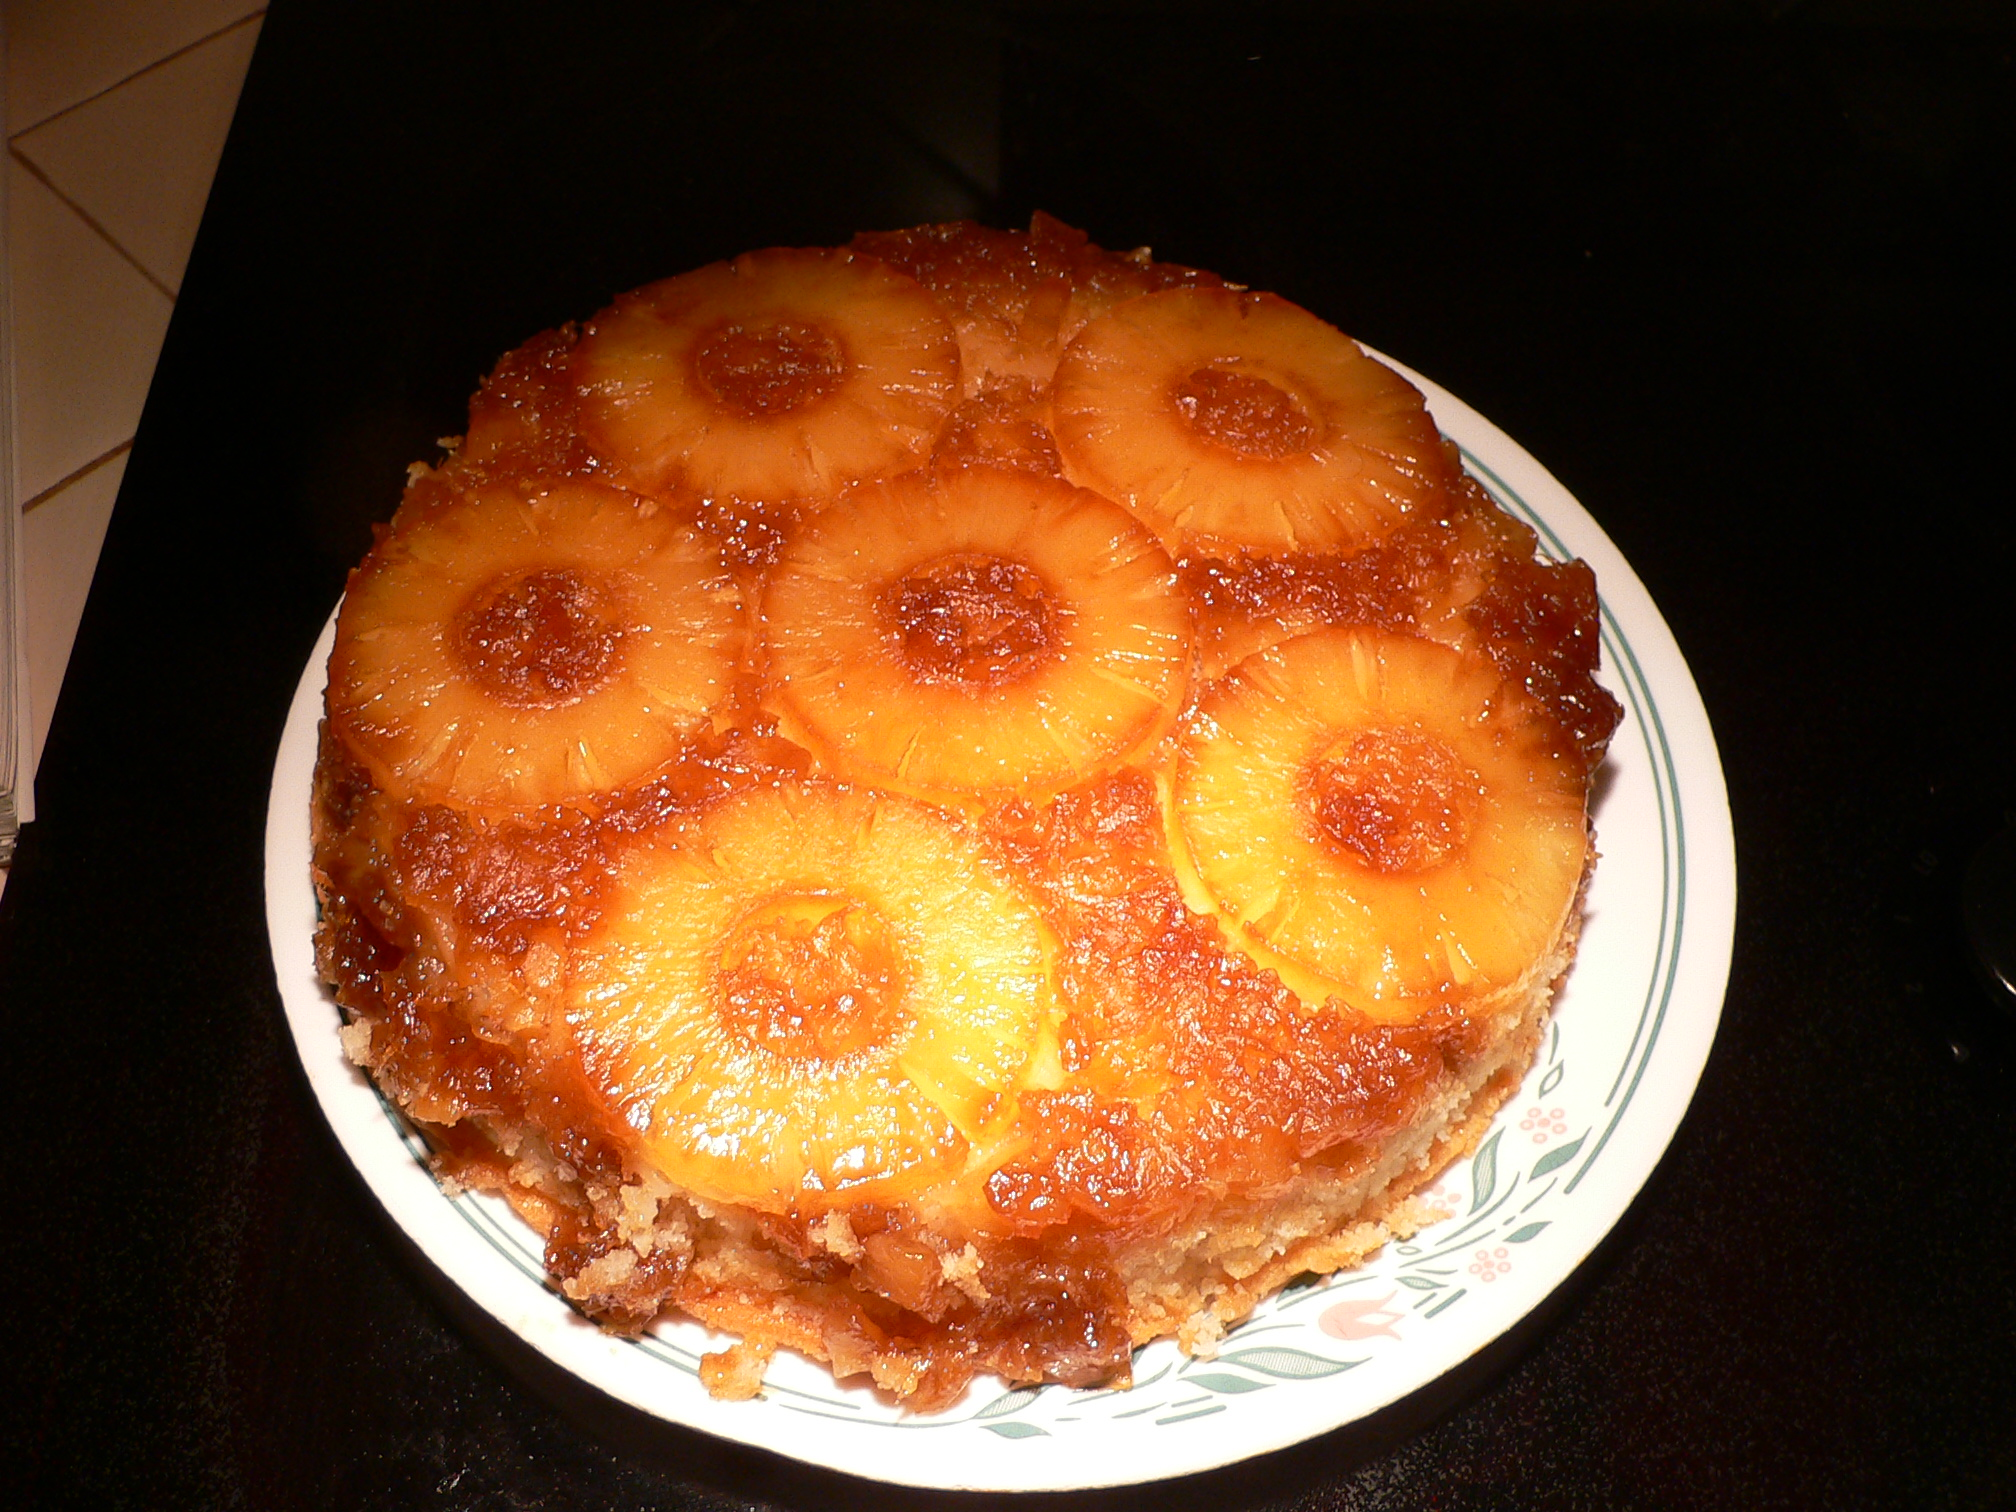 Pineapple Upside Down Cornmeal Cake Recipe